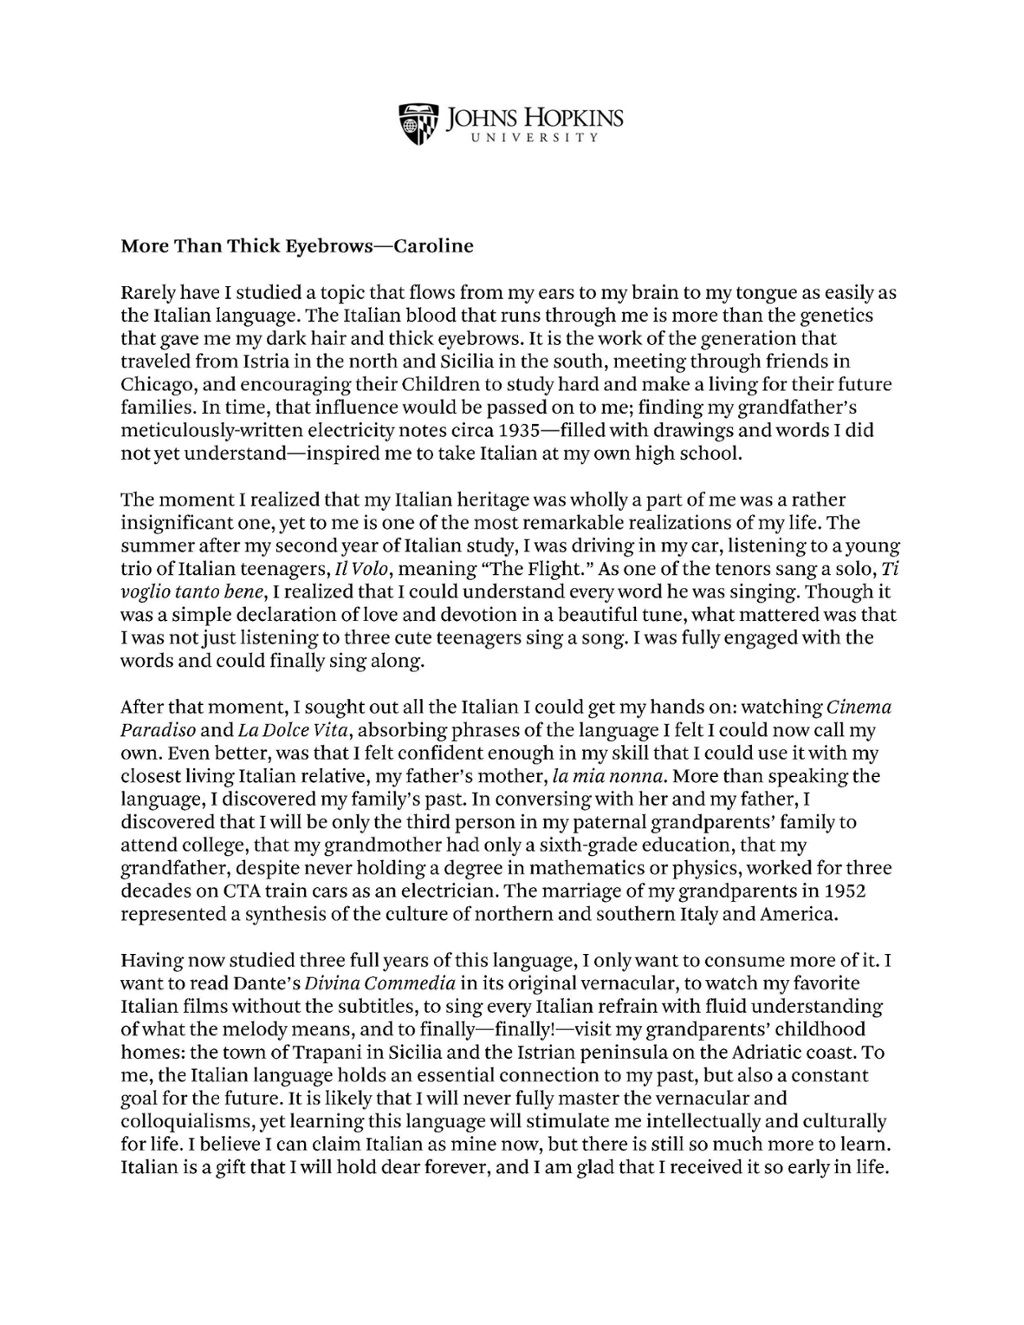 001 Essay Example Johns Hopkins College Remarkable Essays Prompt Full